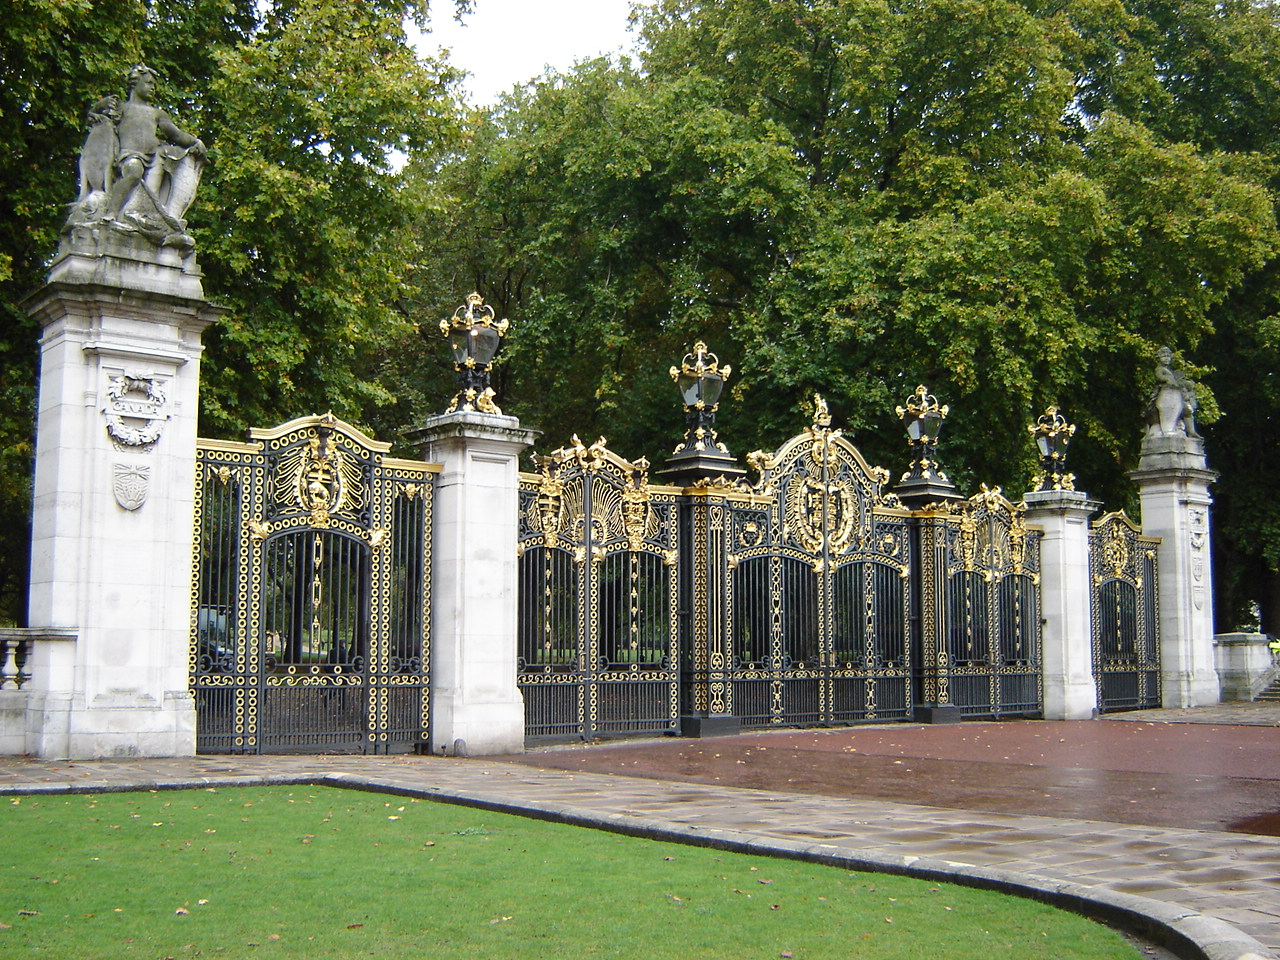 Description canada gate - green park, london england